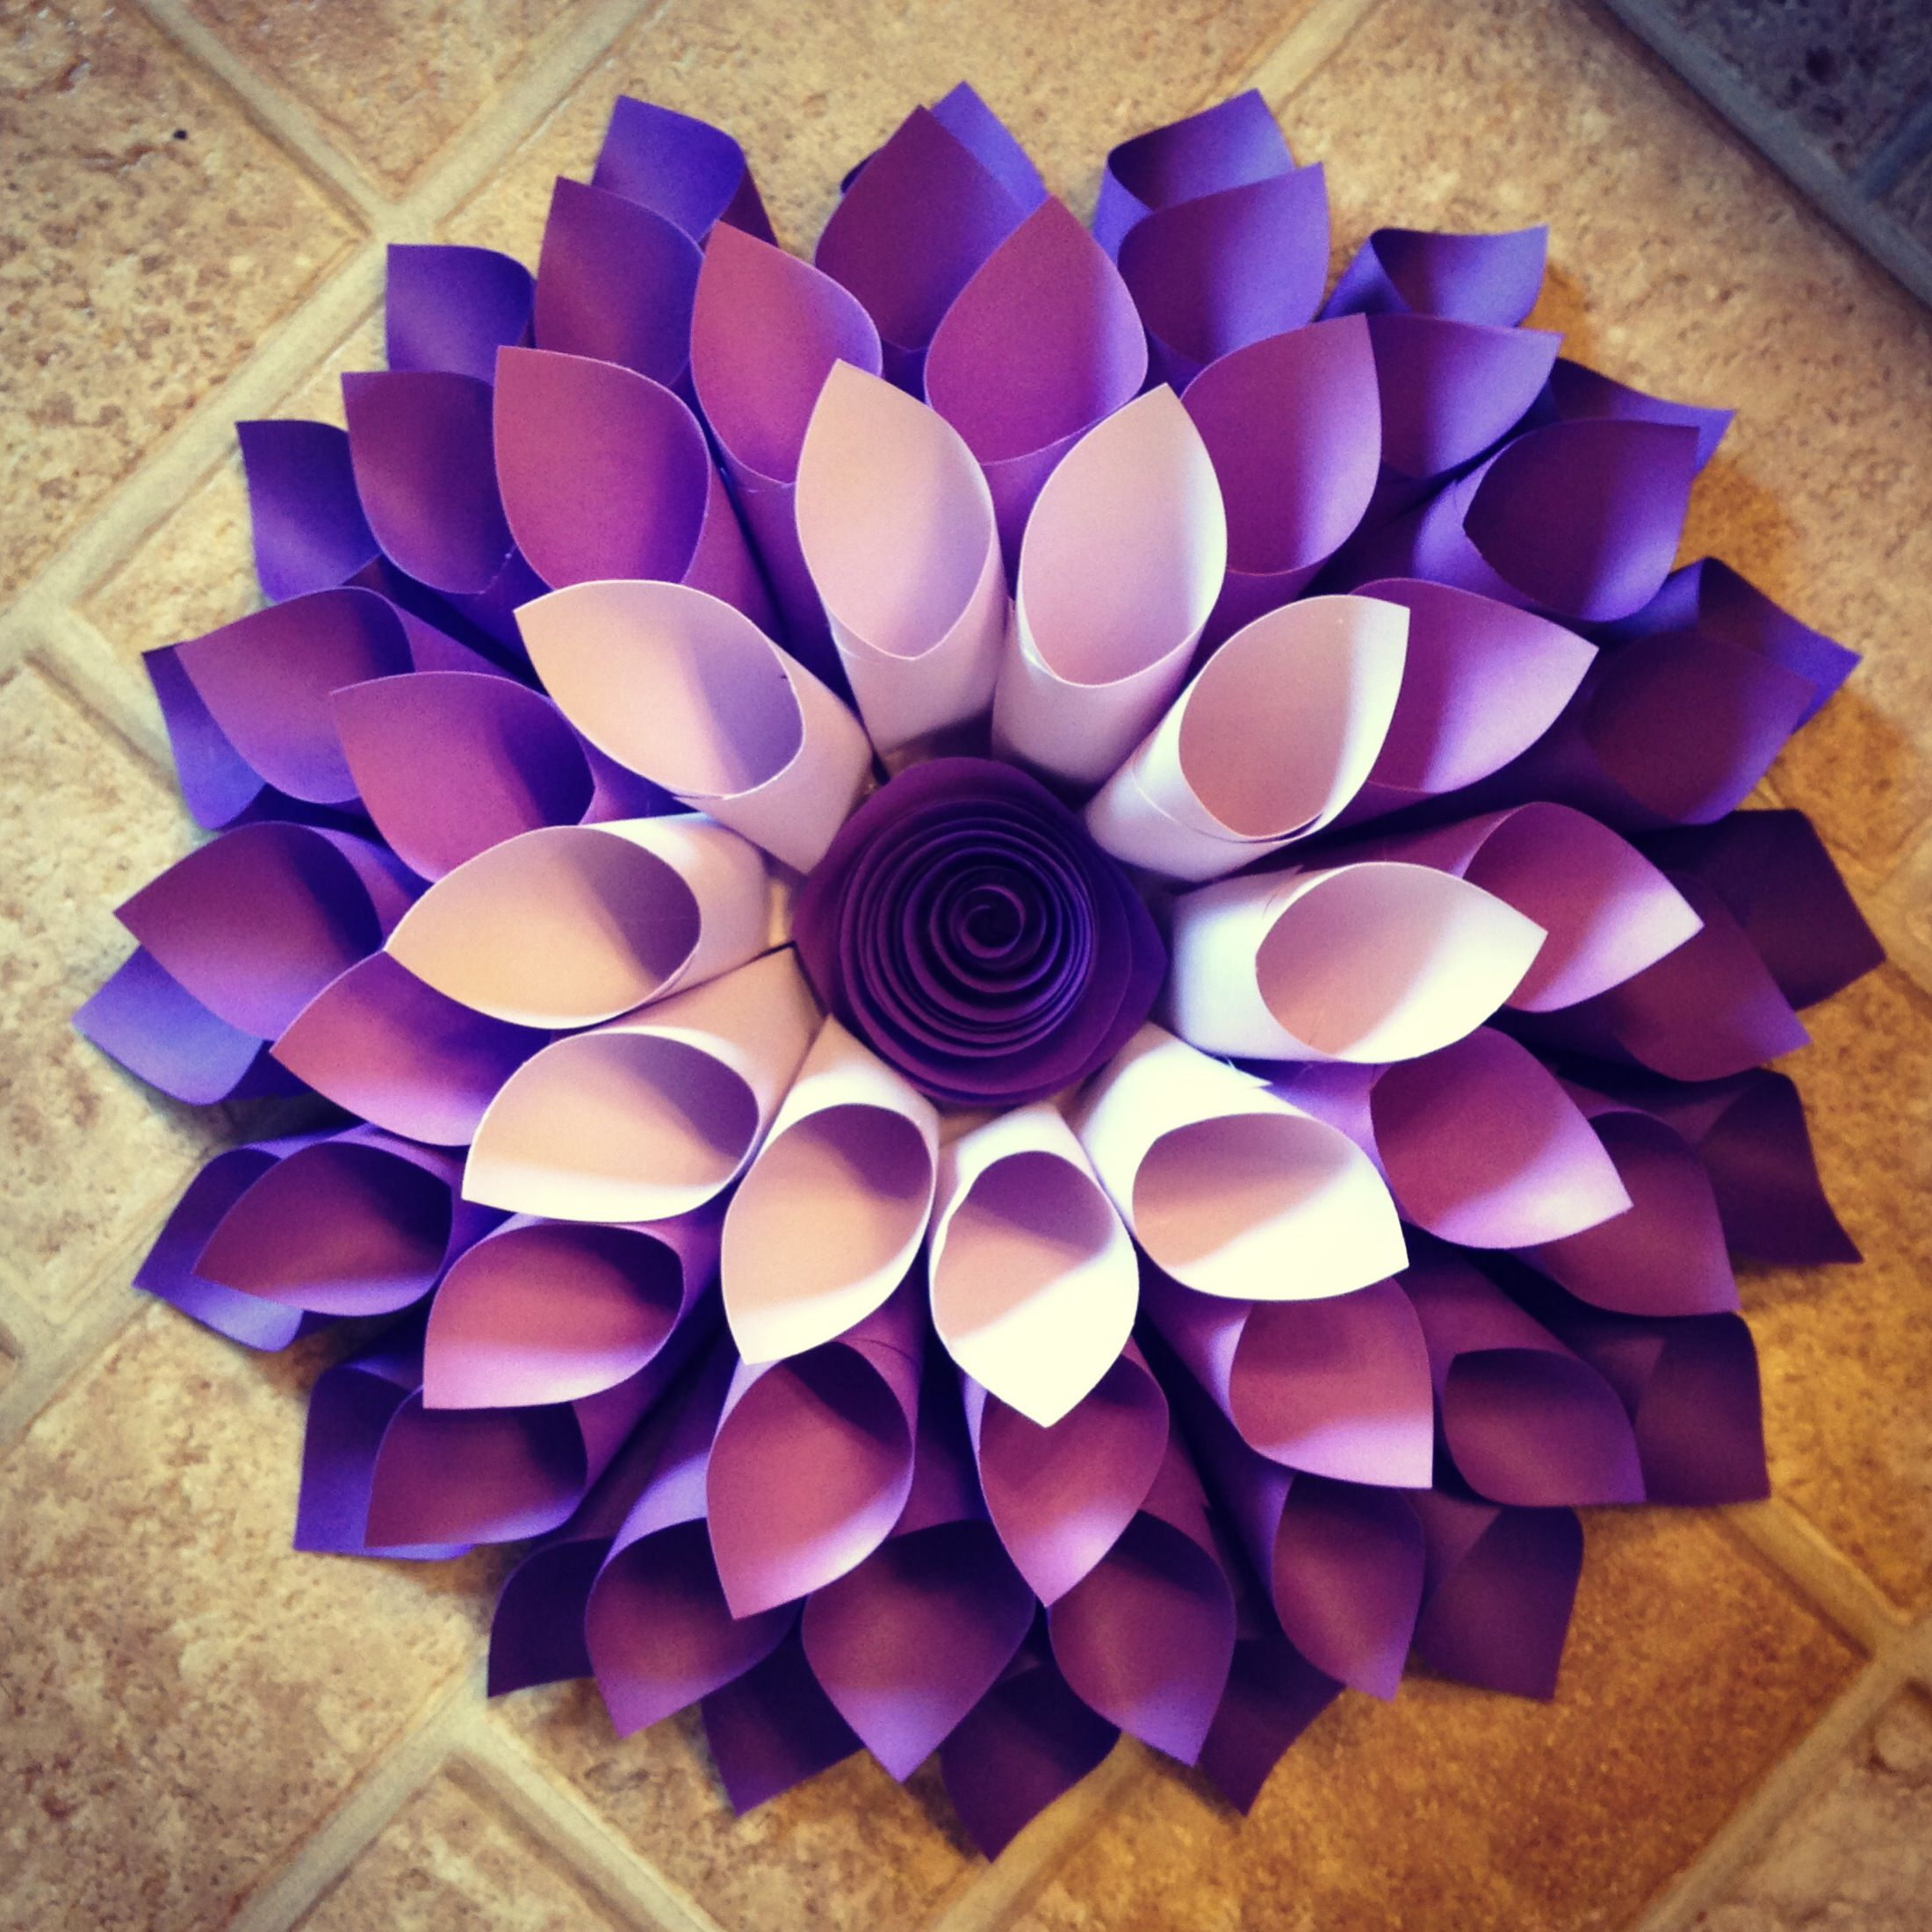 Diy paper flower wreath ruffled - Paper Dahlia Wreath I Did The Center A Little Different Than The Pin I Saw